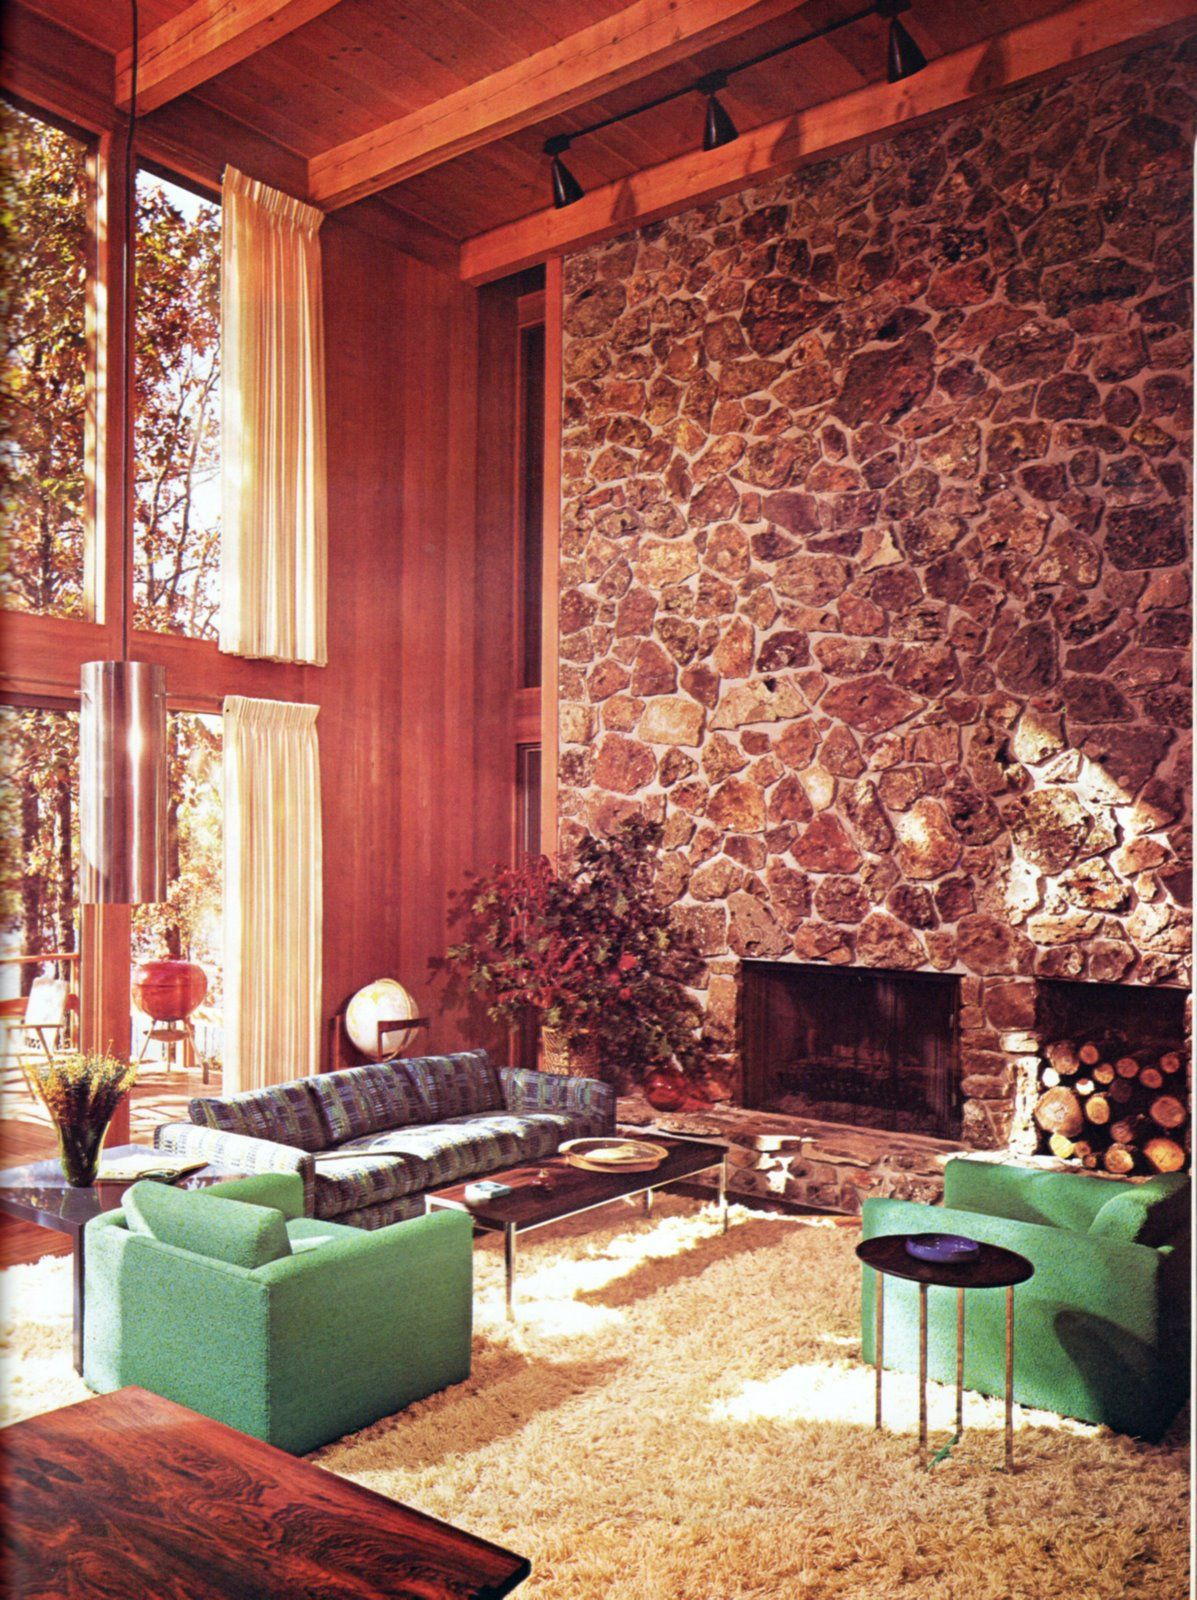 Late 1970s interior reminds me of the house we lived in when i was in kindergarden